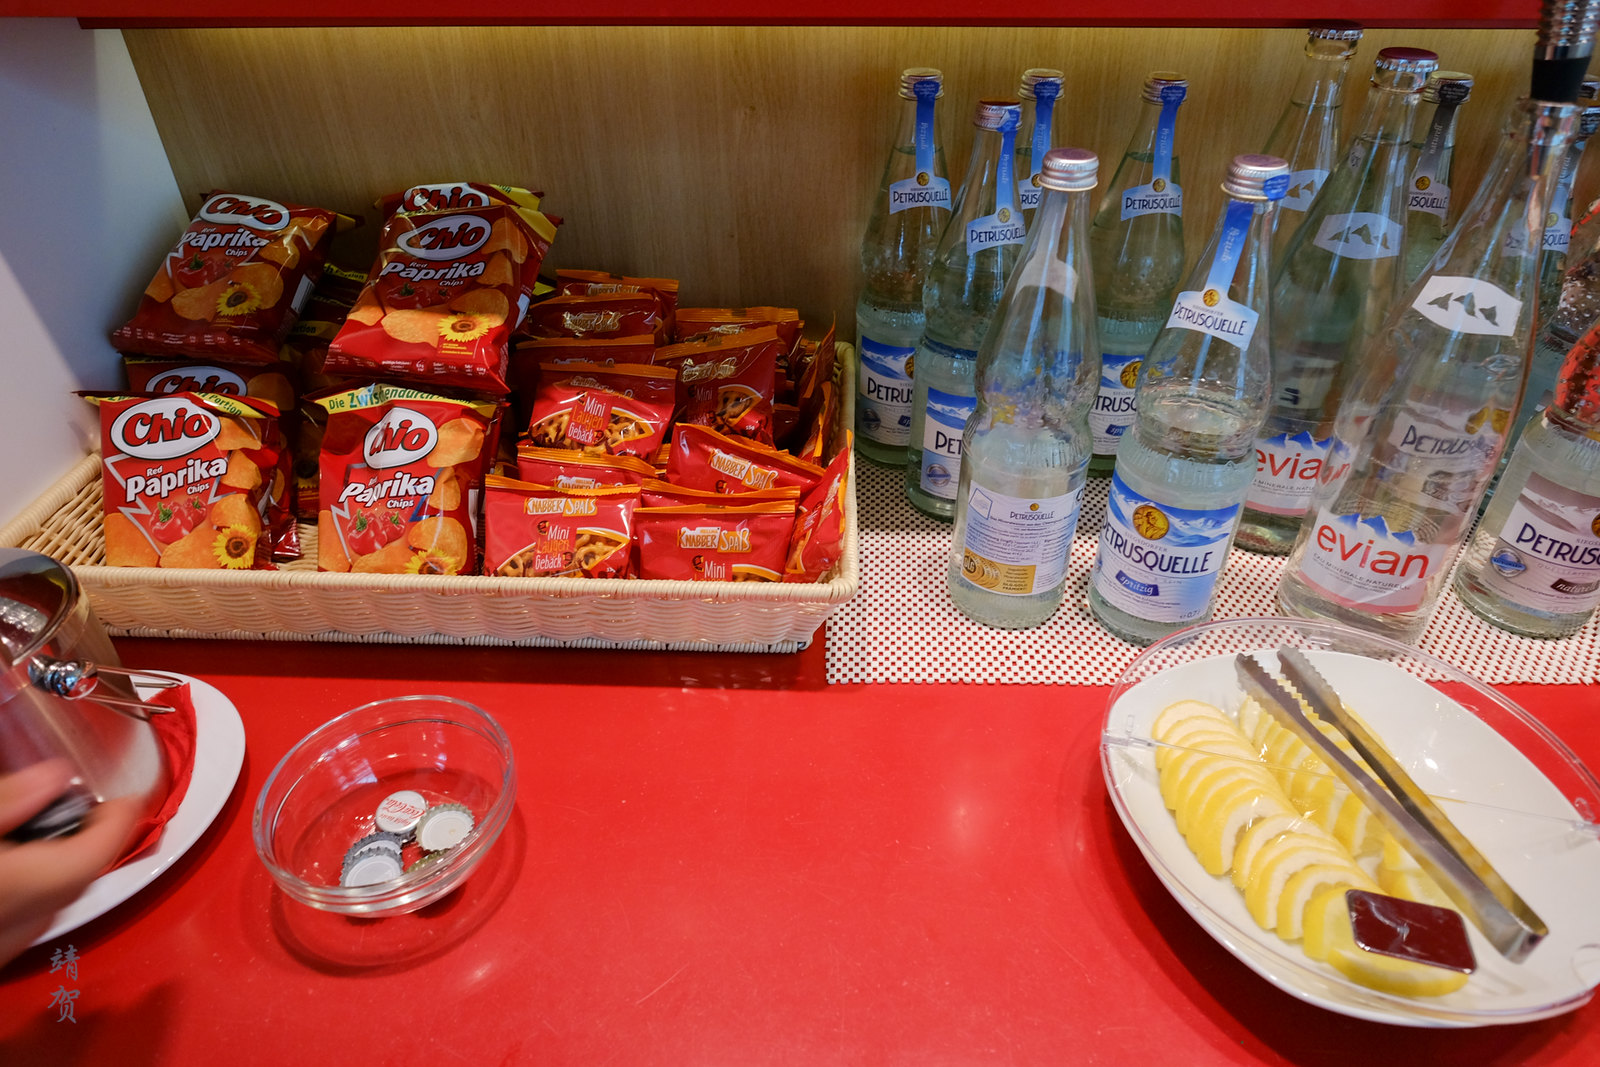 Snacks and bottled water